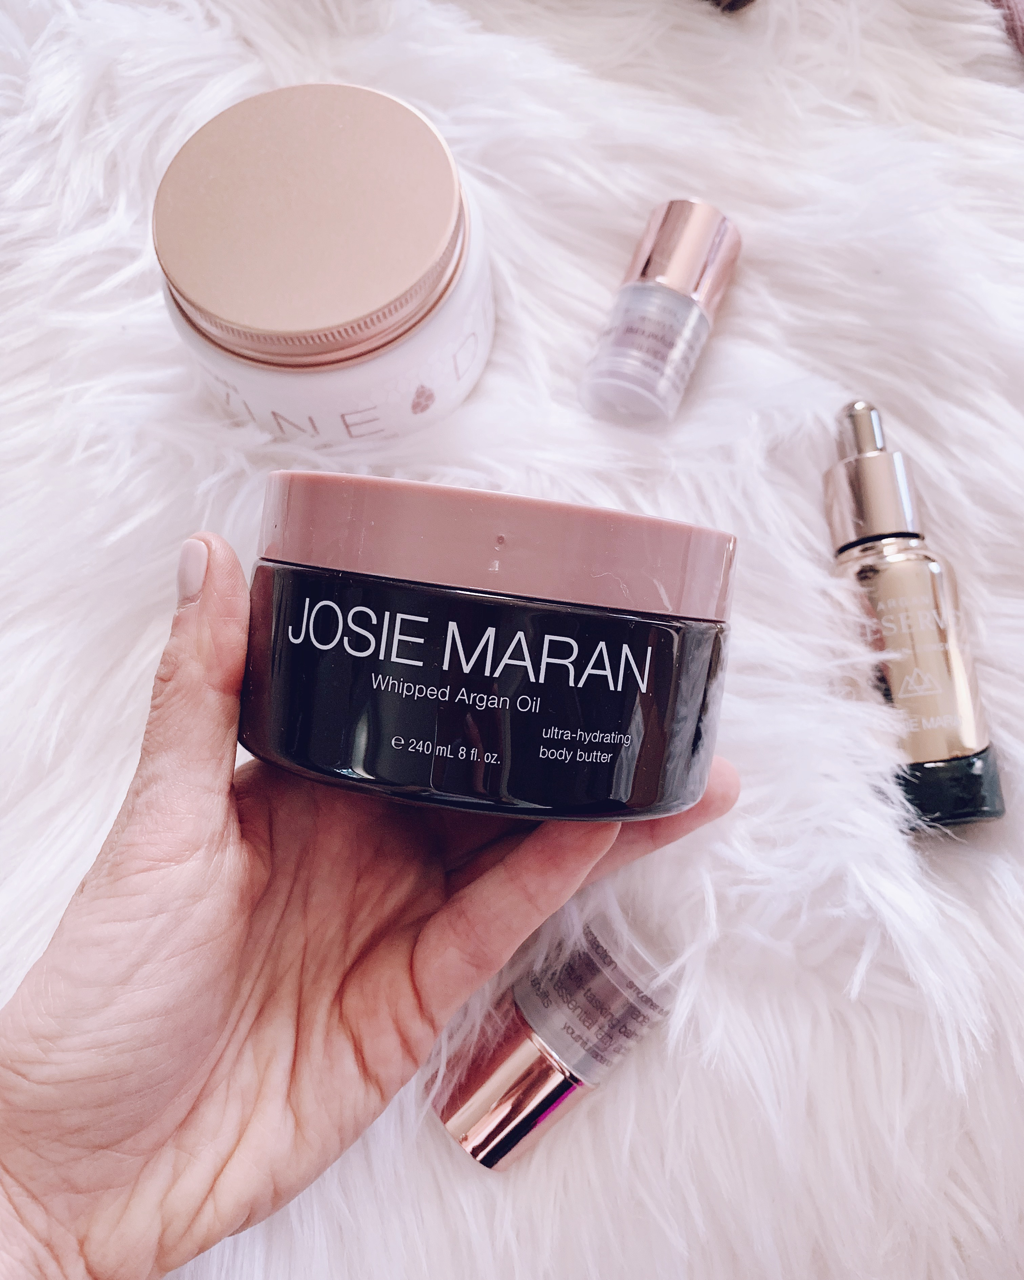 josie maran whipped argan oil, sunless tanning routine and best self-tanner products, how to use